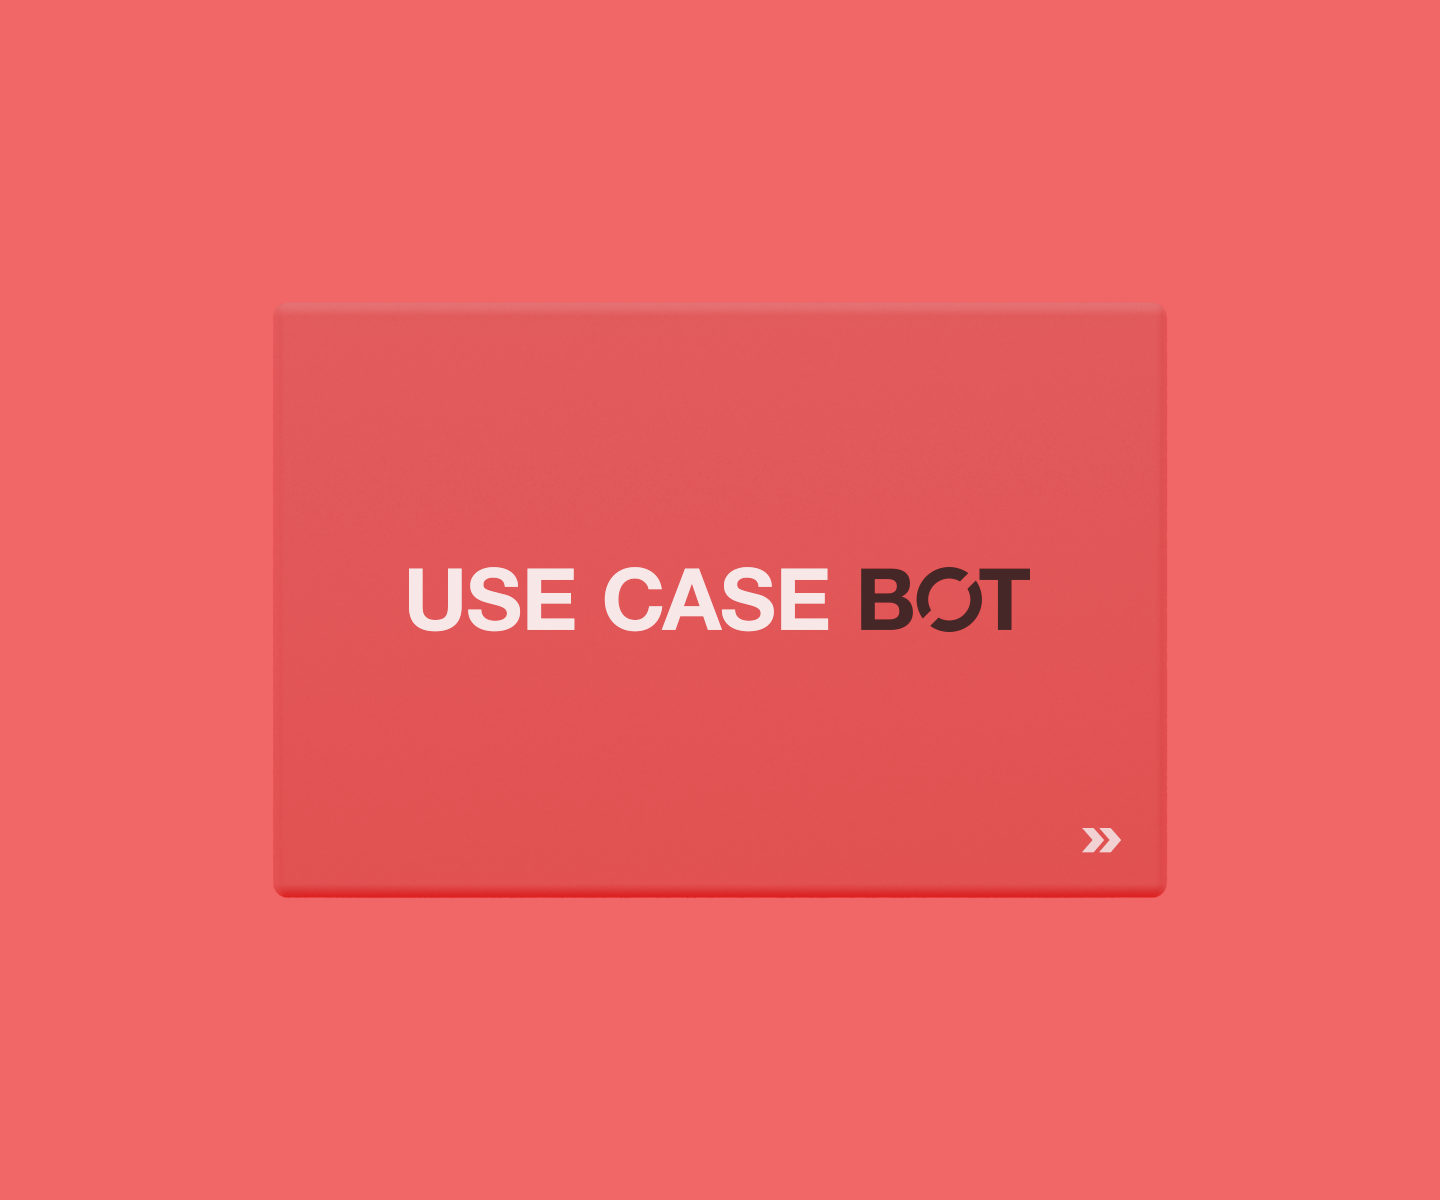 Use Case Bot